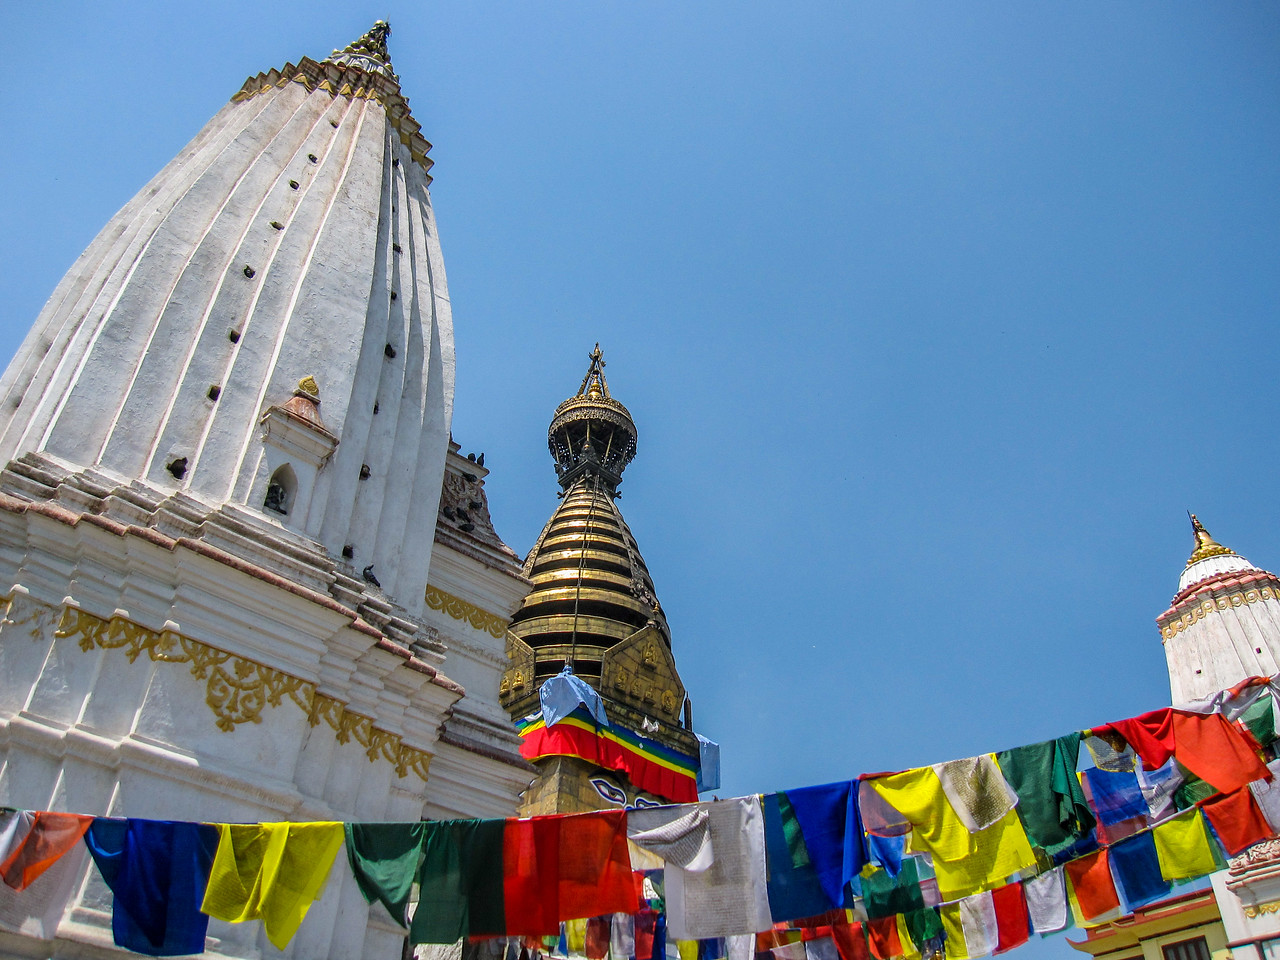 Flags at Swayambhunath